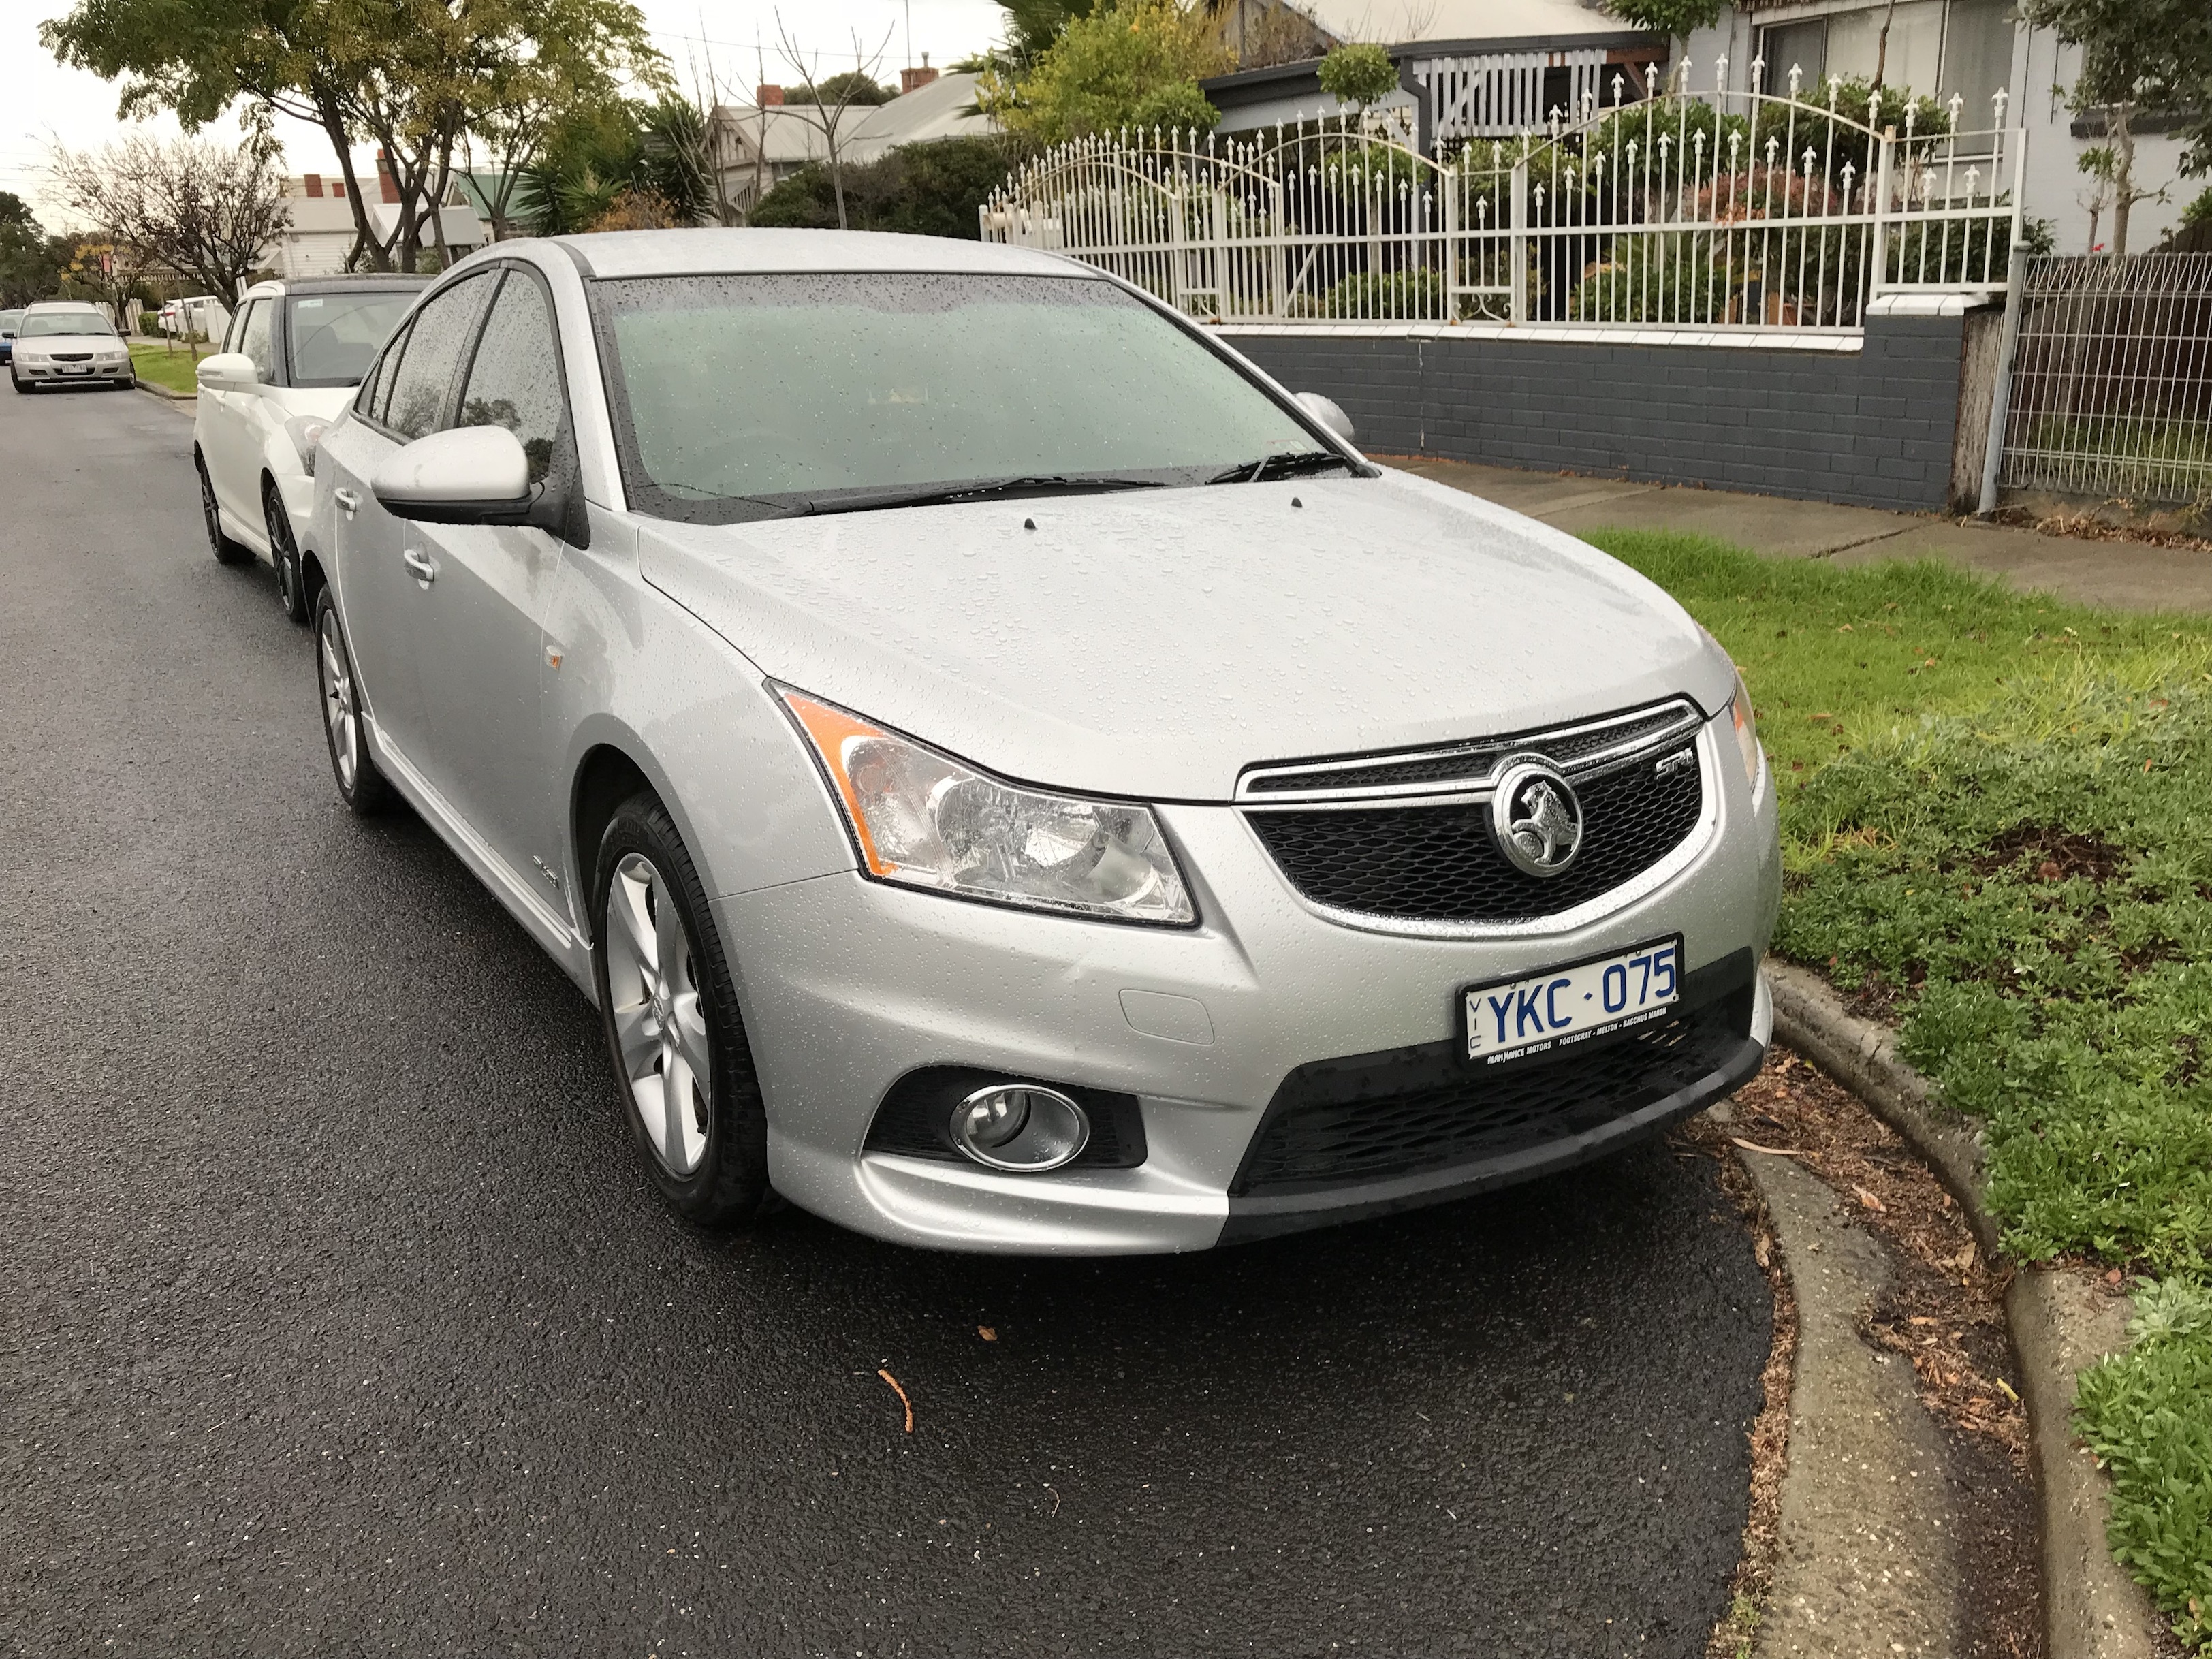 Picture of Hanitha's 2011 Holden Cruze Sriv